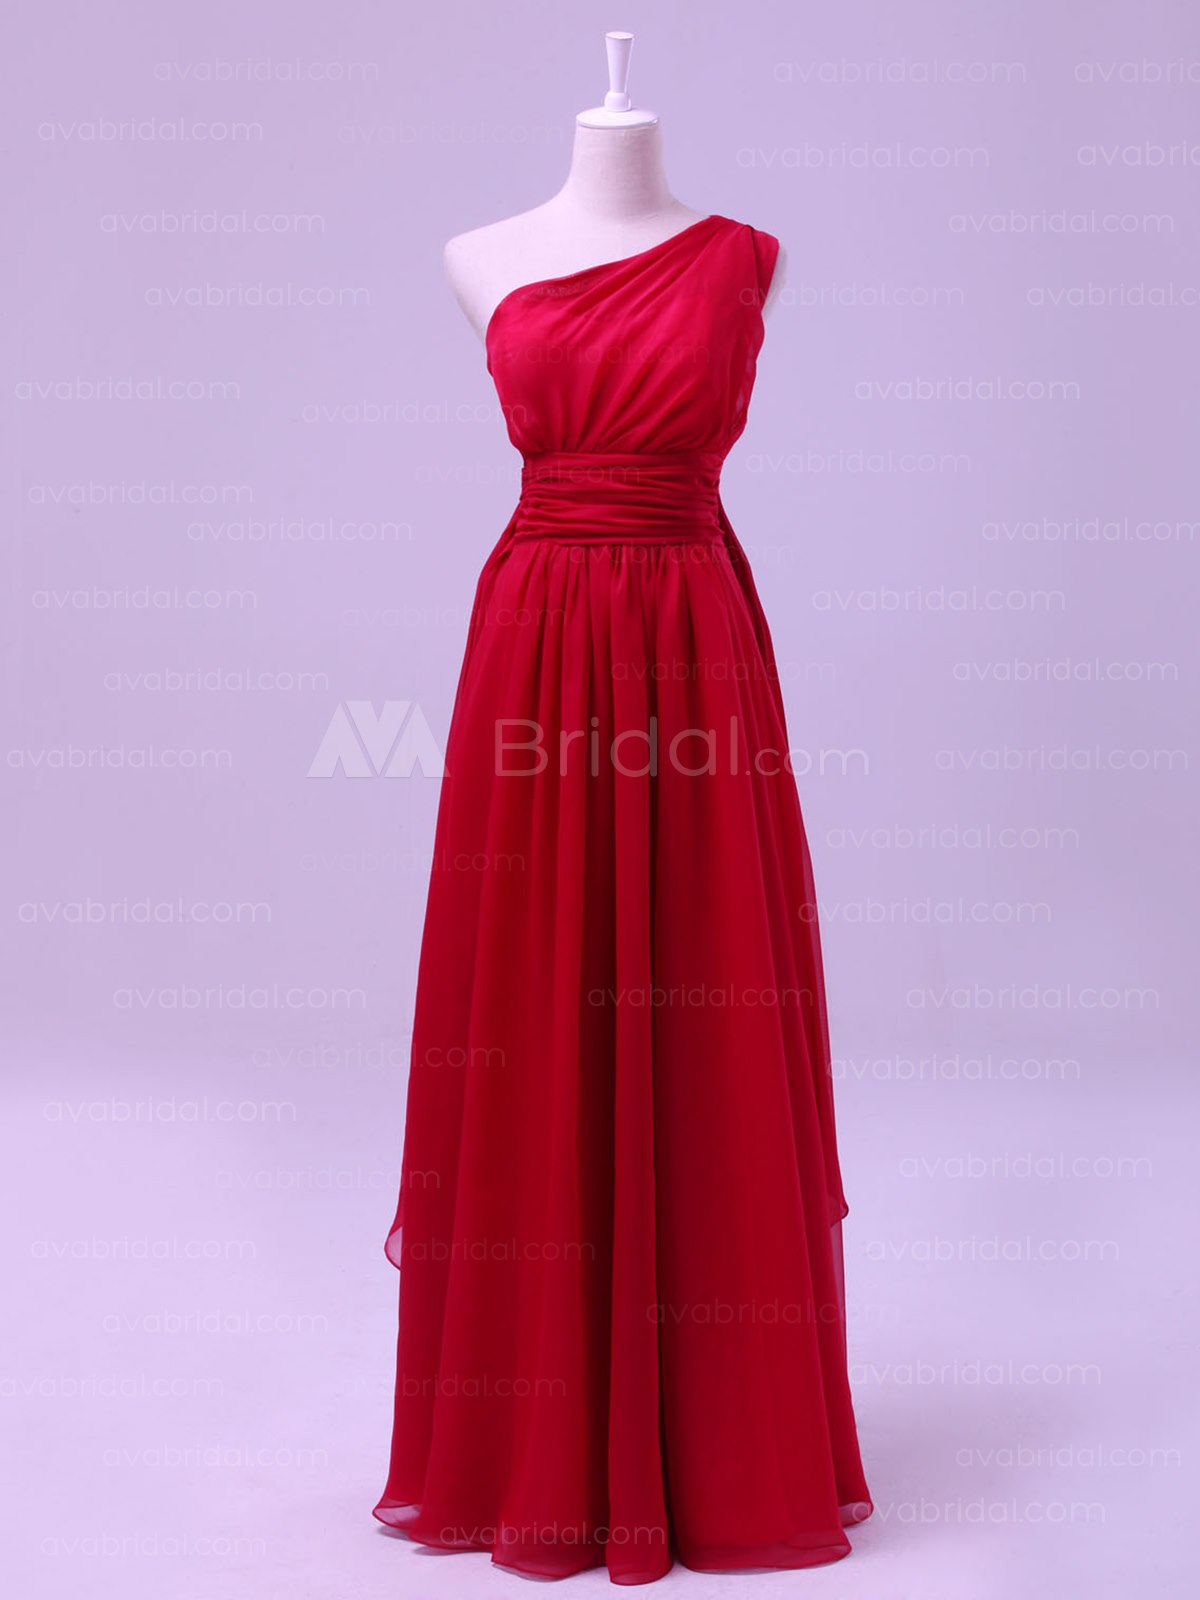 Grecian Chiffon Bridesmaid Dress B467-Front